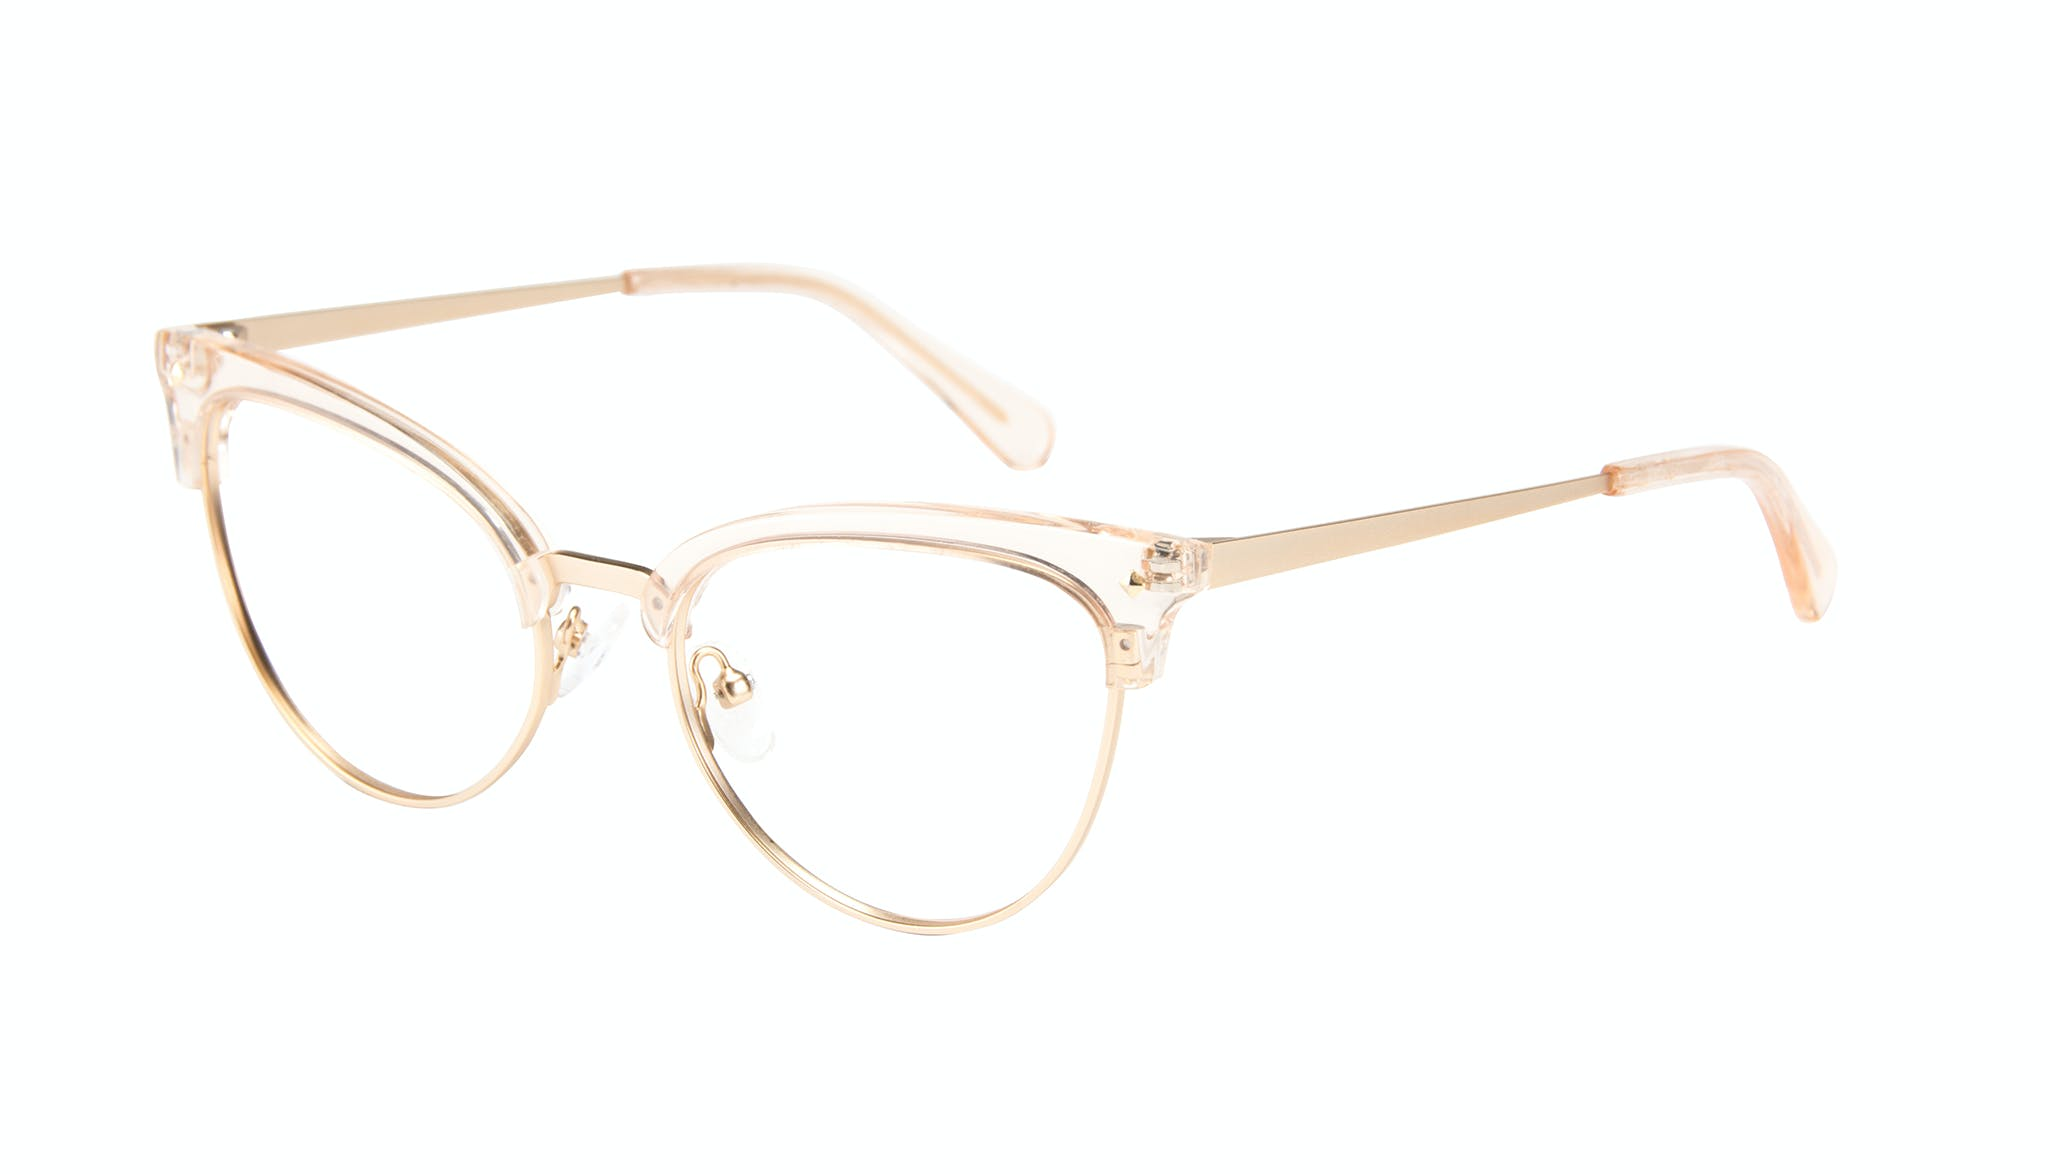 Affordable Fashion Glasses Cat Eye Daring Cateye Eyeglasses Women Moon Blond Tilt